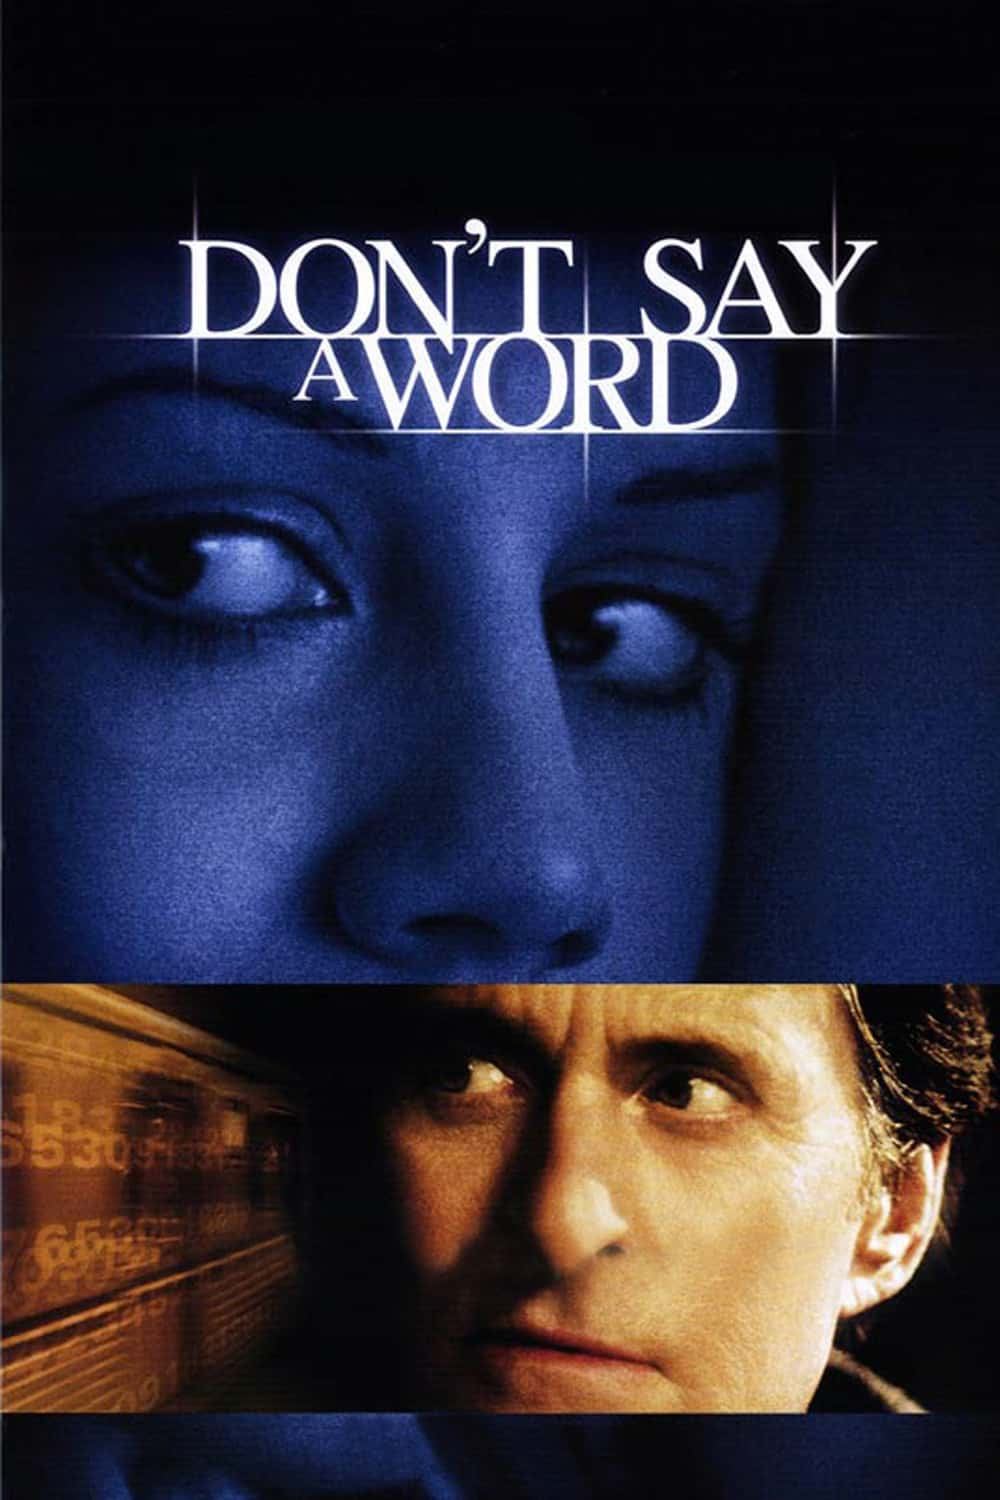 Don't Say a Word, 2001